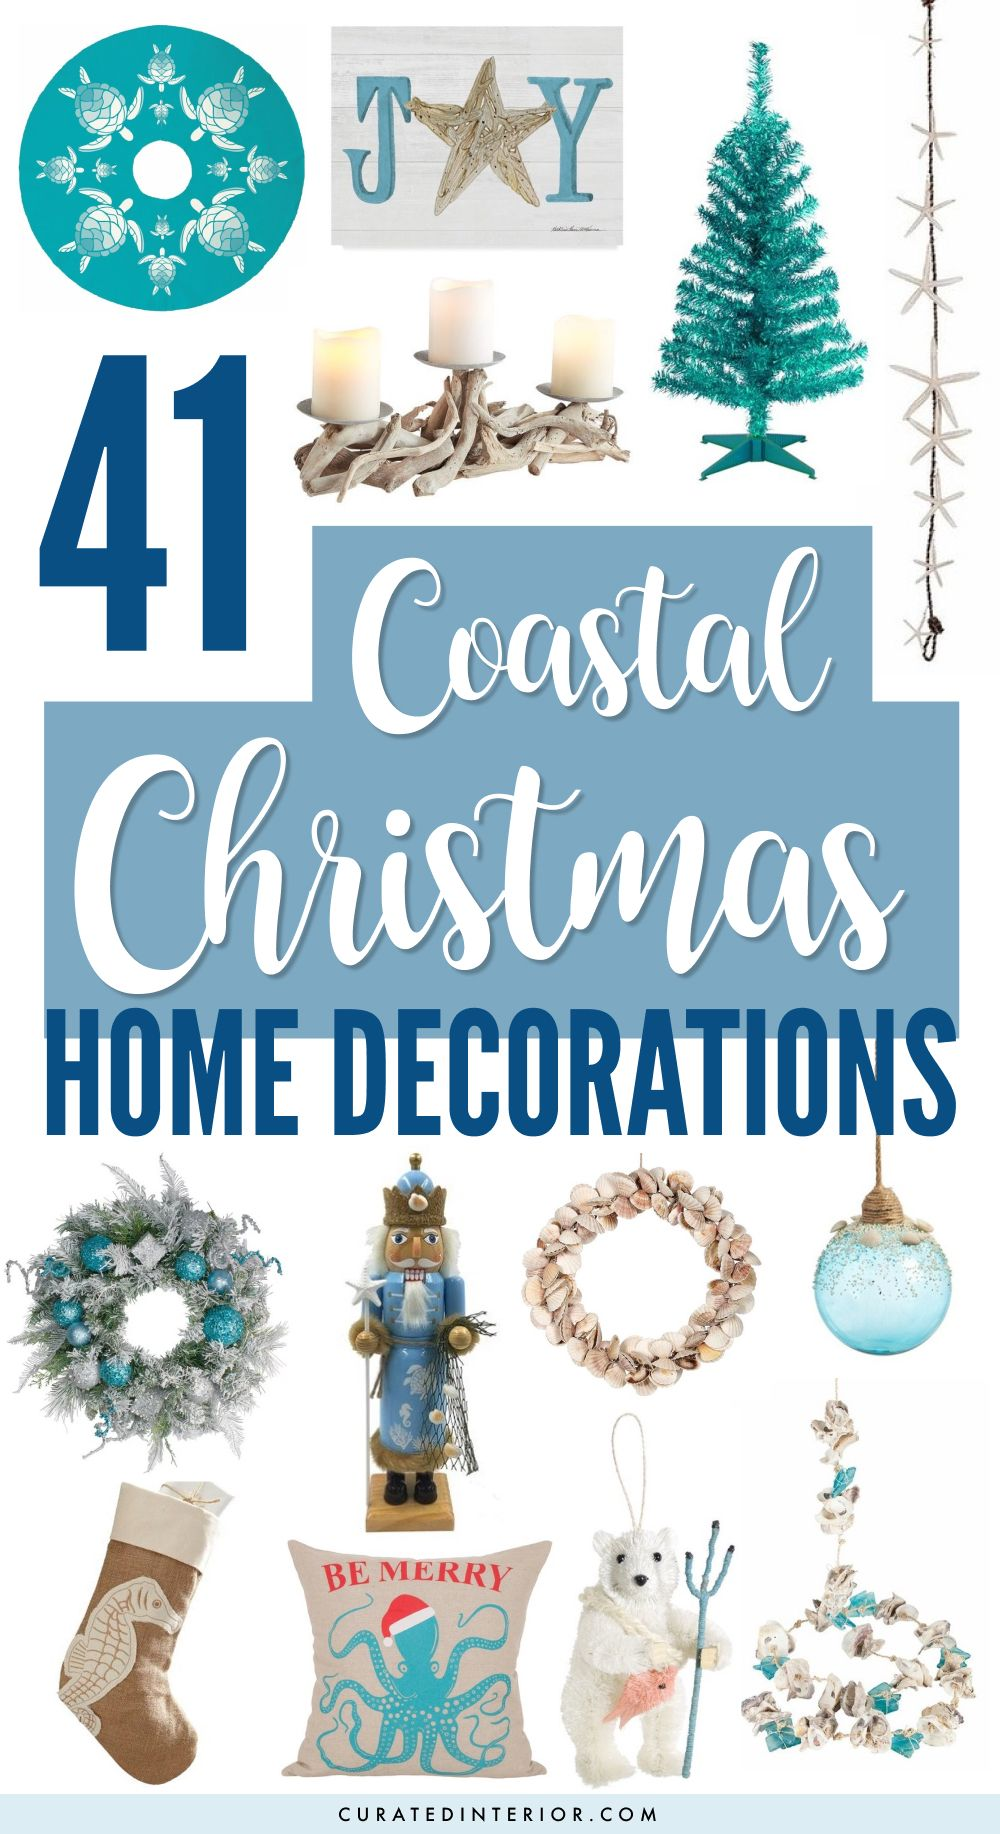 41 Coastal Christmas Home Decorations for Spending time at your Beach Home during the Holidays! #coastaldecor #coastalchristmas #christmasdecor #christmas